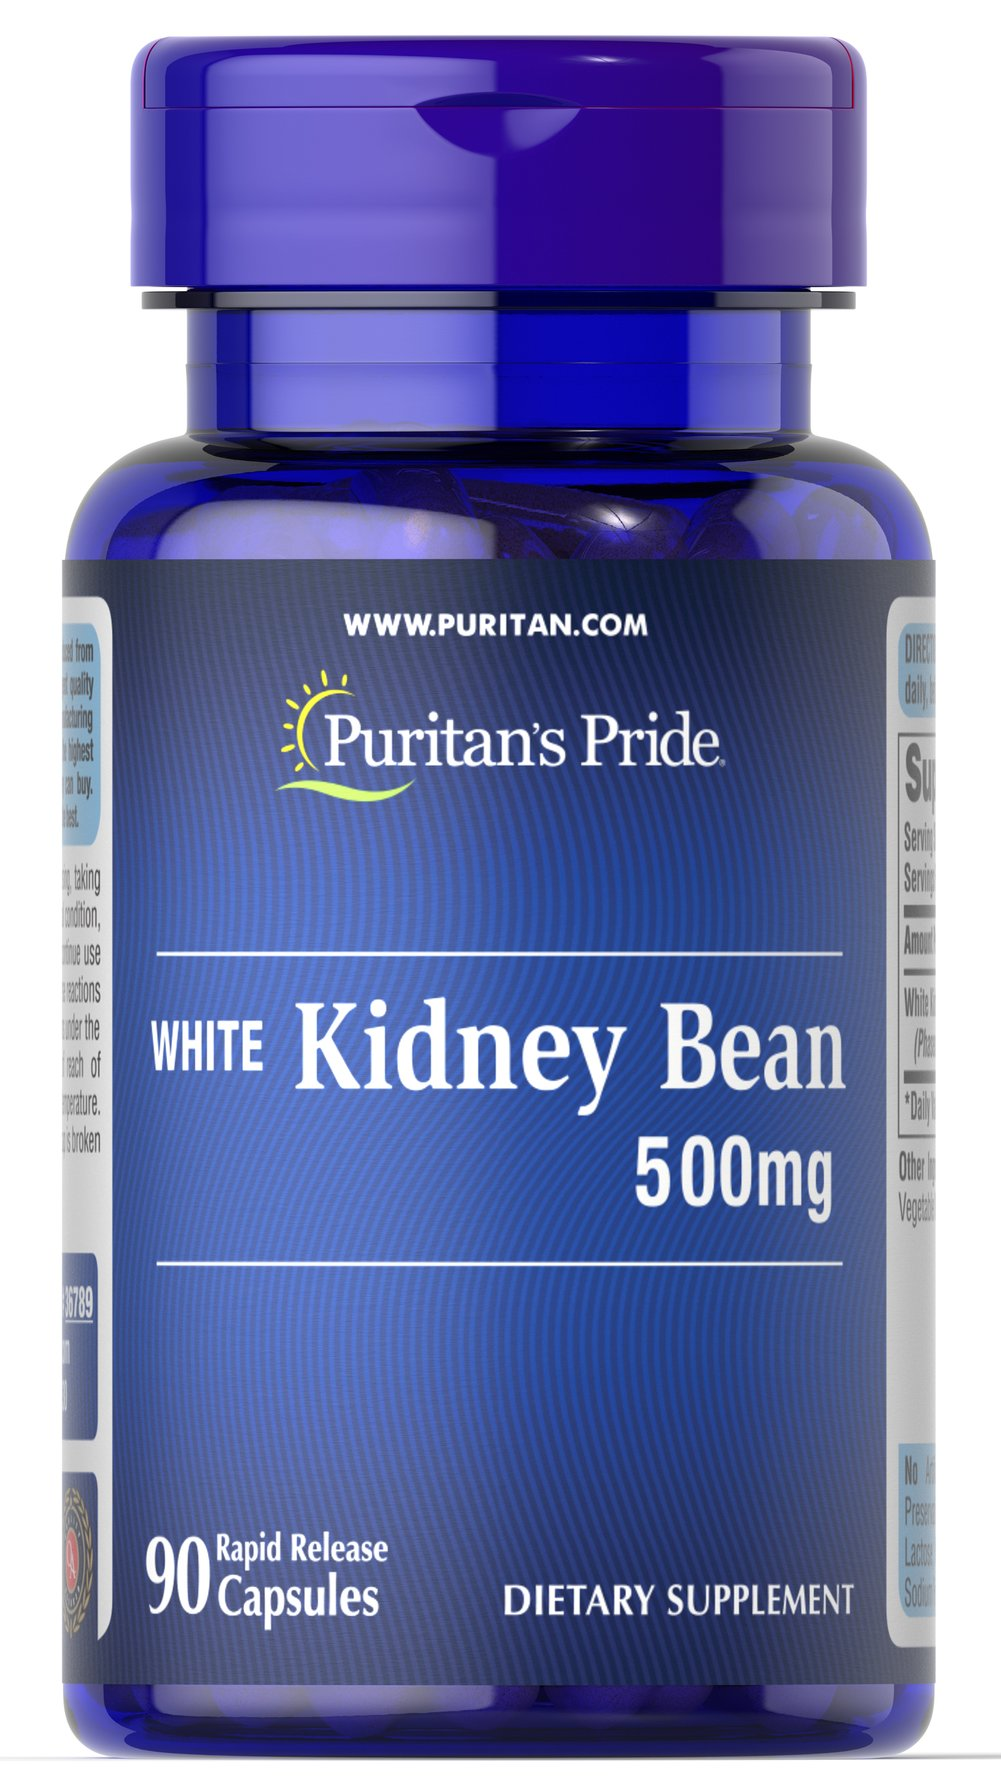 White Kidney Bean <p>We are proud to bring you White Kidney Bean.   Look to Puritan's Pride for high quality products and great nutrition at the best possible prices. </p><p></p> 90 Capsules 500 mg $17.99